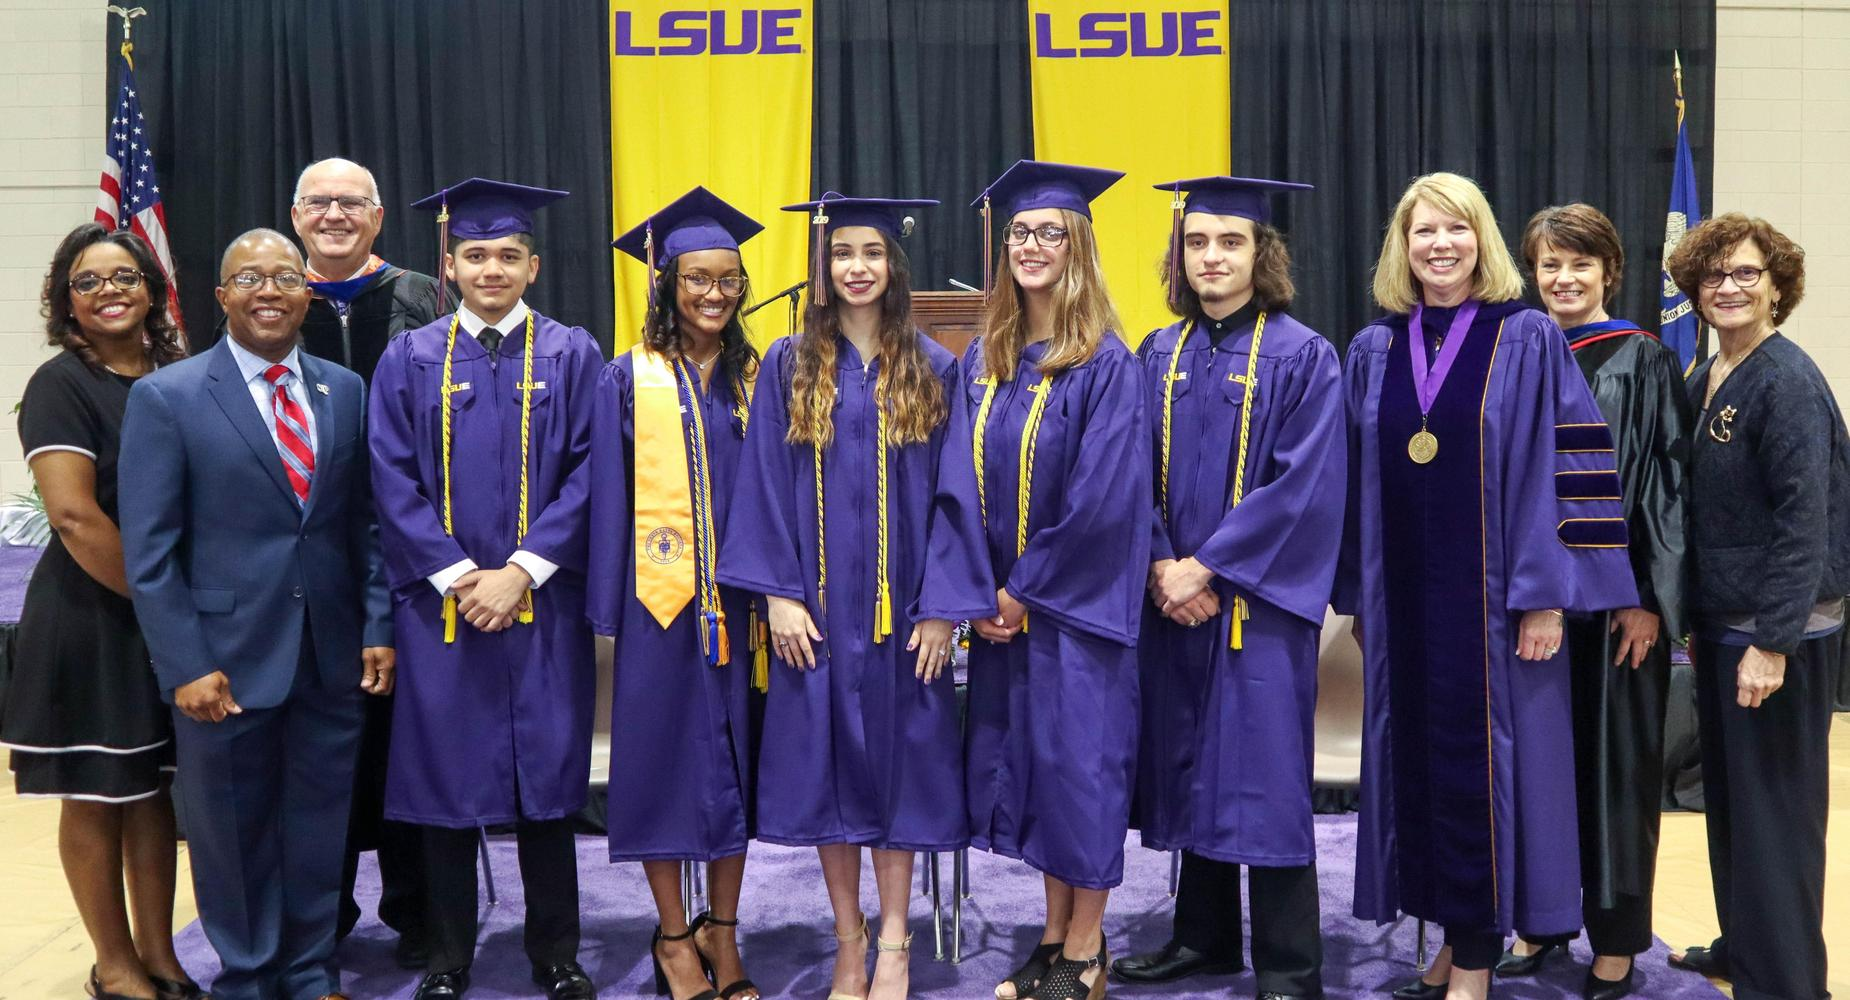 LSUE Academy Graduates - These students an earned associate degree days short of graduating from our SLP high schools.